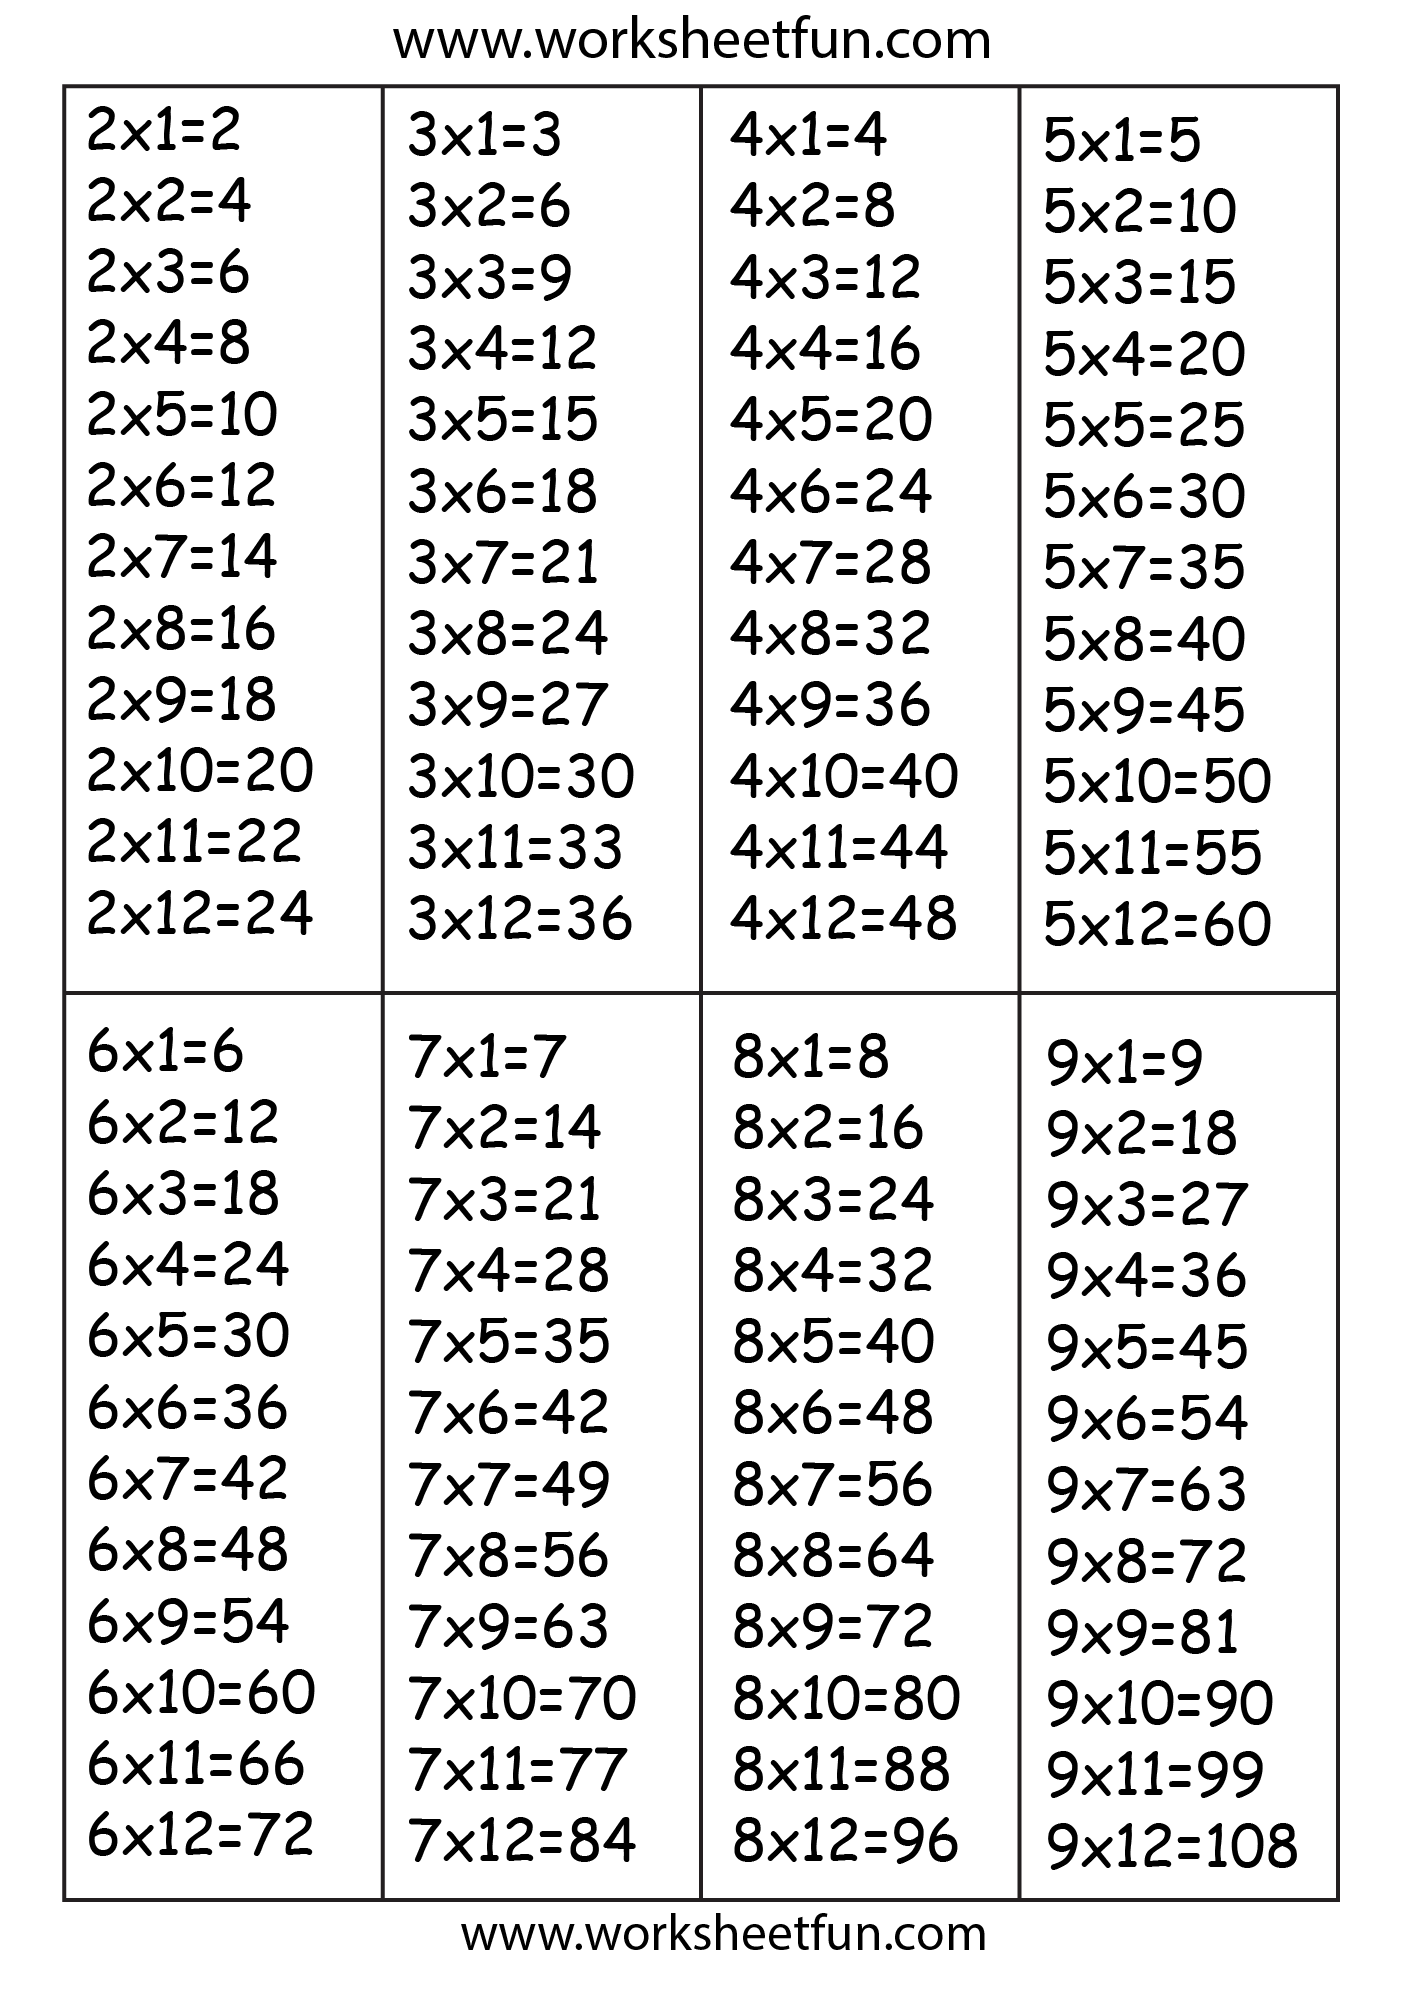 Worksheets 45 Times Table Chart times table chart free printable worksheets 2 3 4 5 6 7